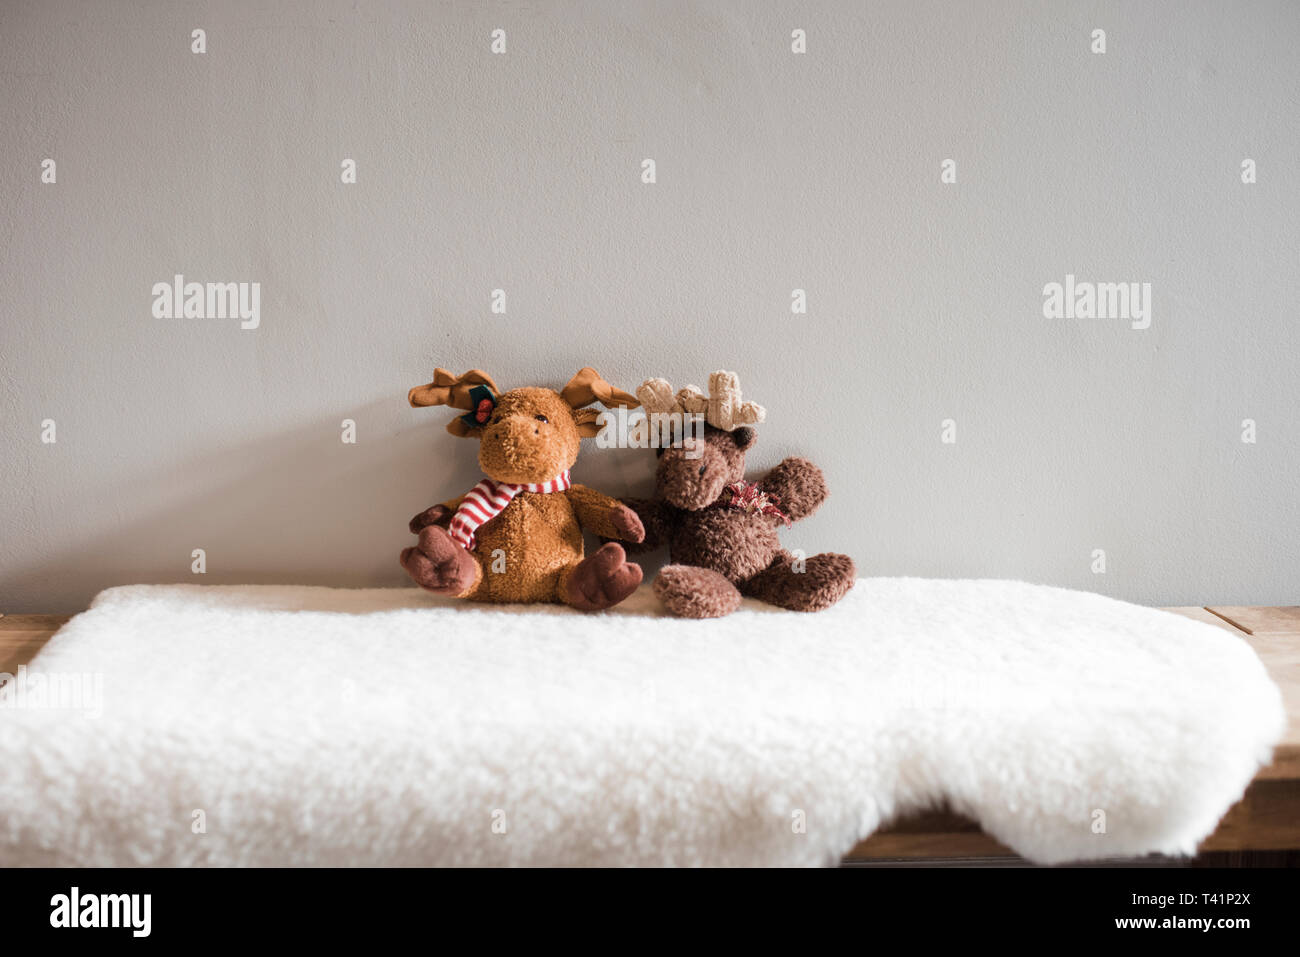 Two moose children's soft toys sitting on a white rug Stock Photo